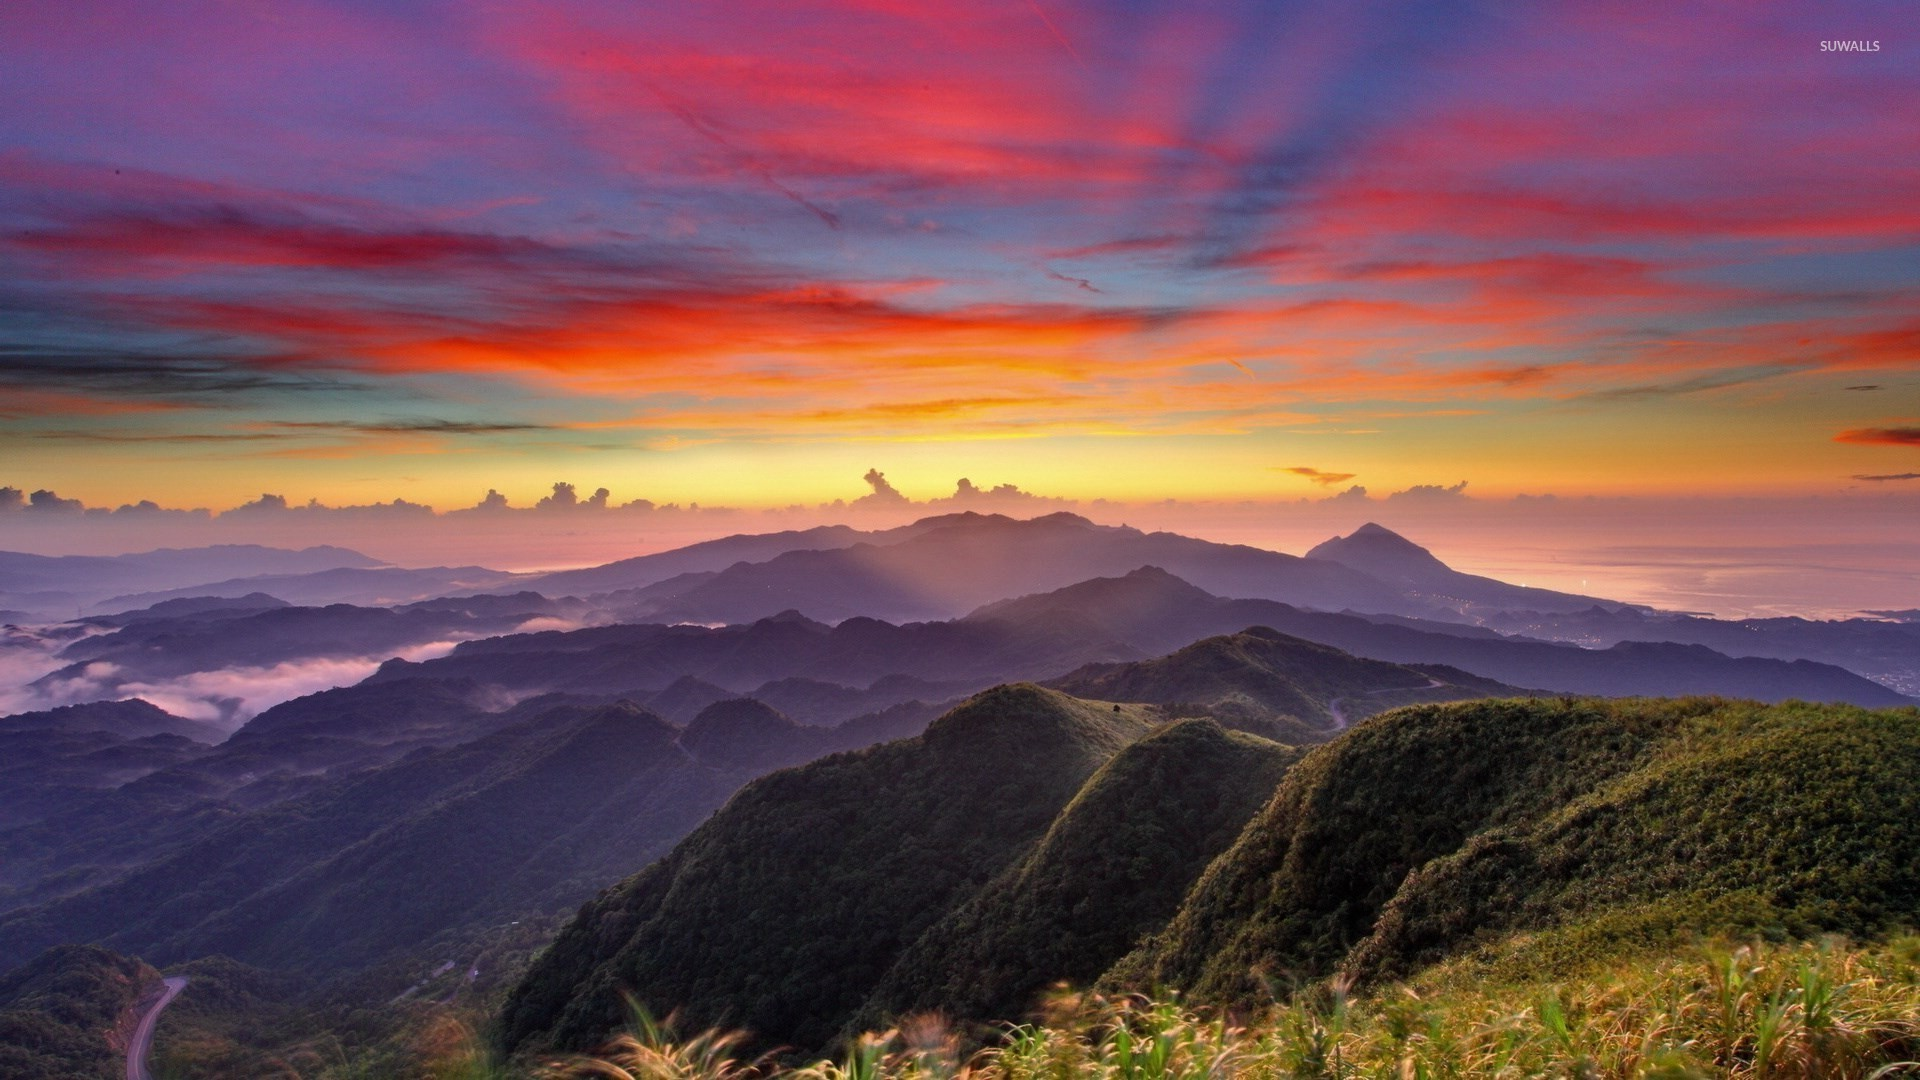 colorful mountain sunrise wallpaper nature wallpapers